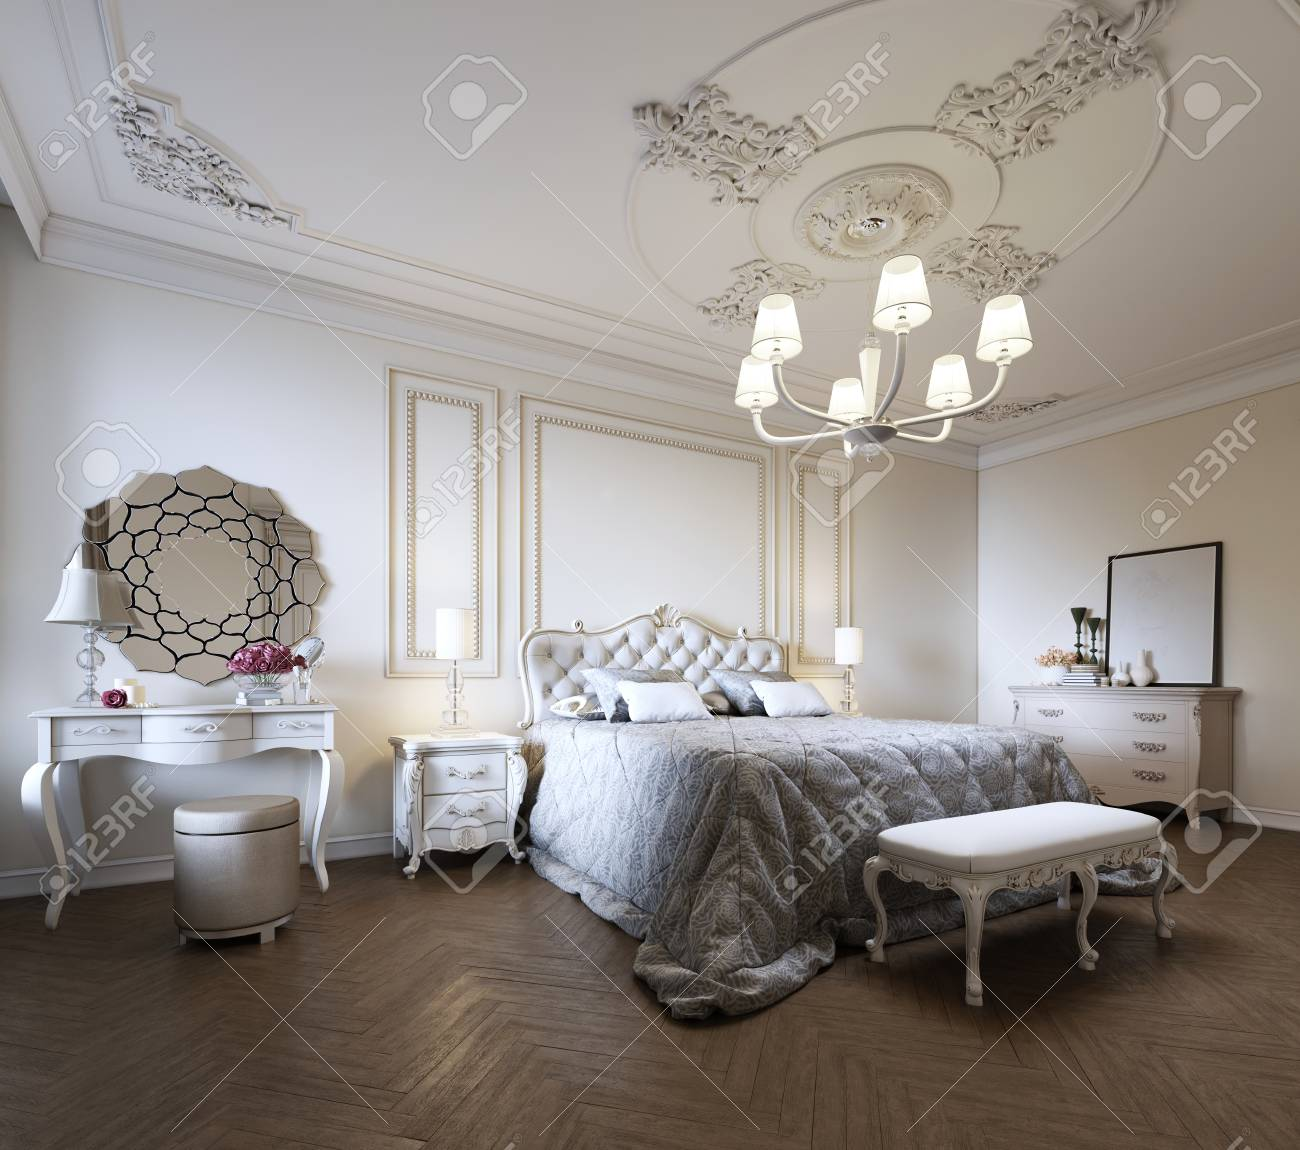 Bedroom interior design in a modern classic style. 3d rendering